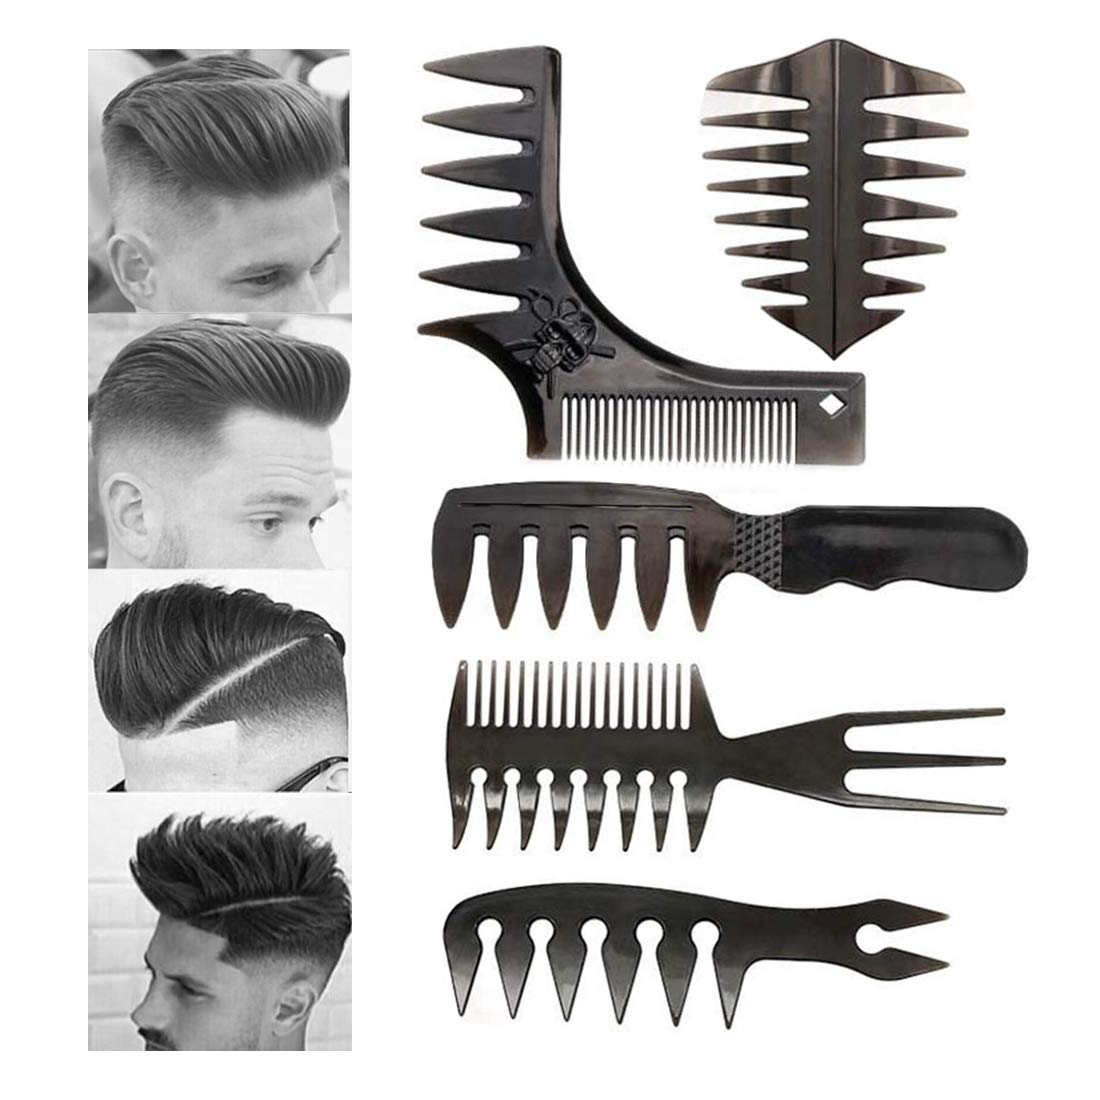 5Pcs Combs for Men Choice Professional Comb Max 62% OFF Styling Co Set Hair